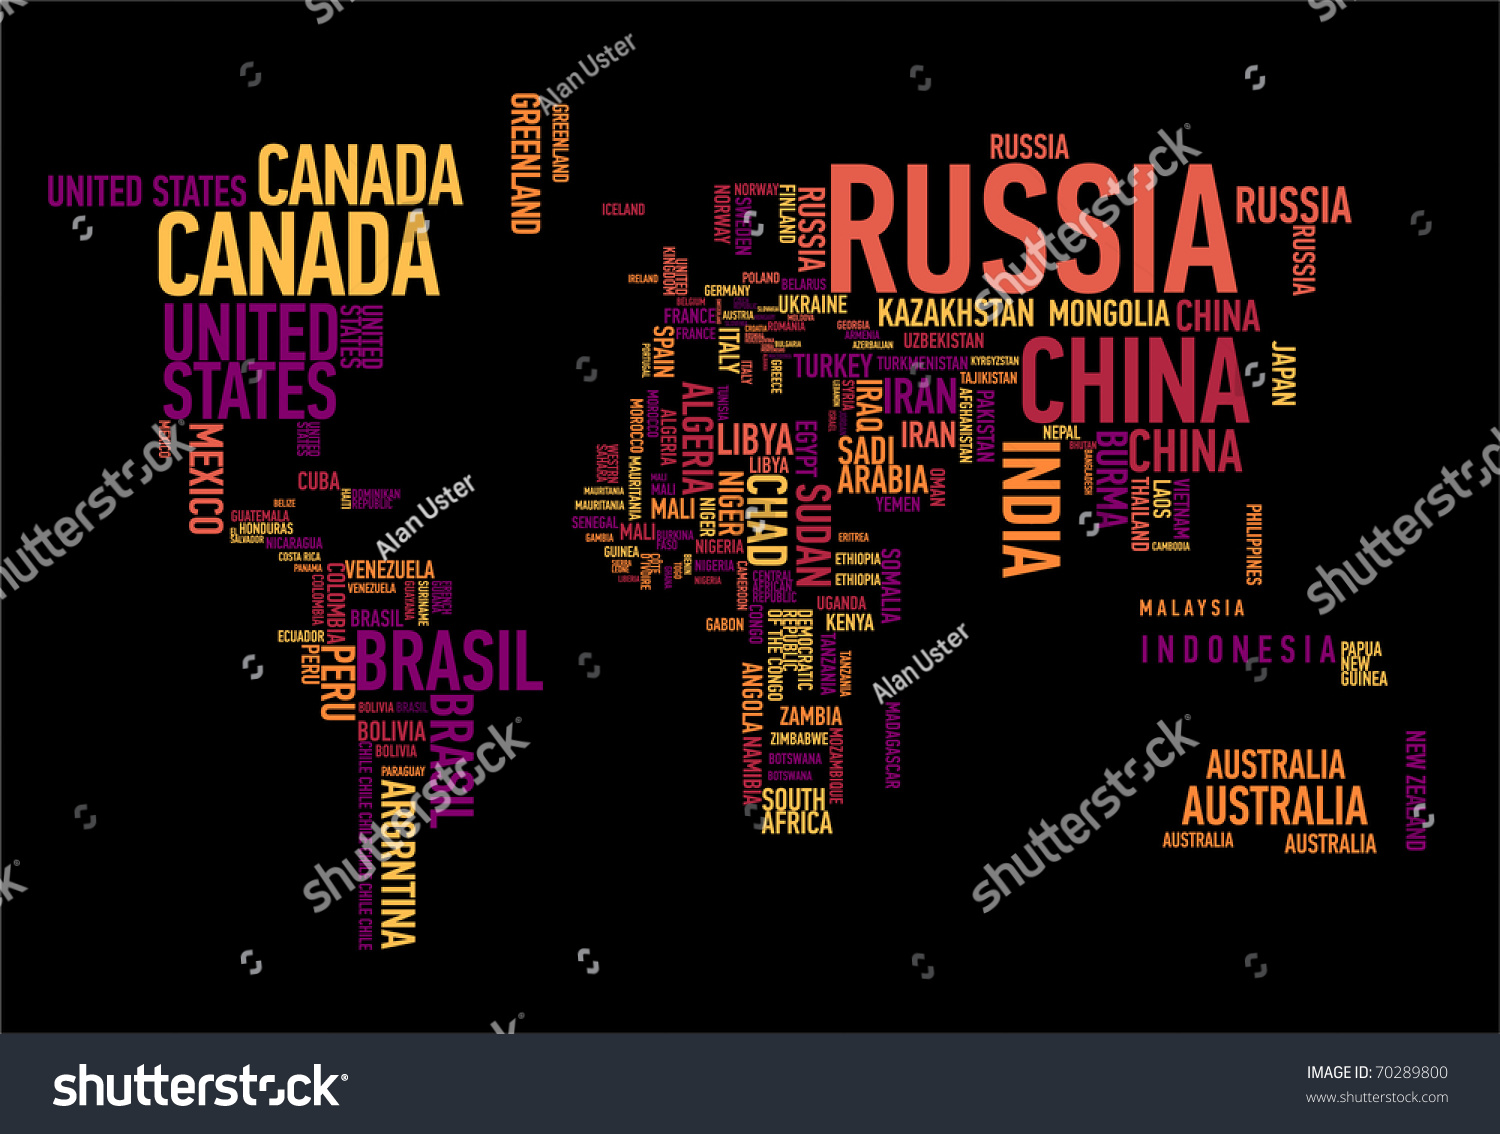 World map countries wordcloud stock vector 70289800 shutterstock world map countries in wordcloud gumiabroncs Choice Image